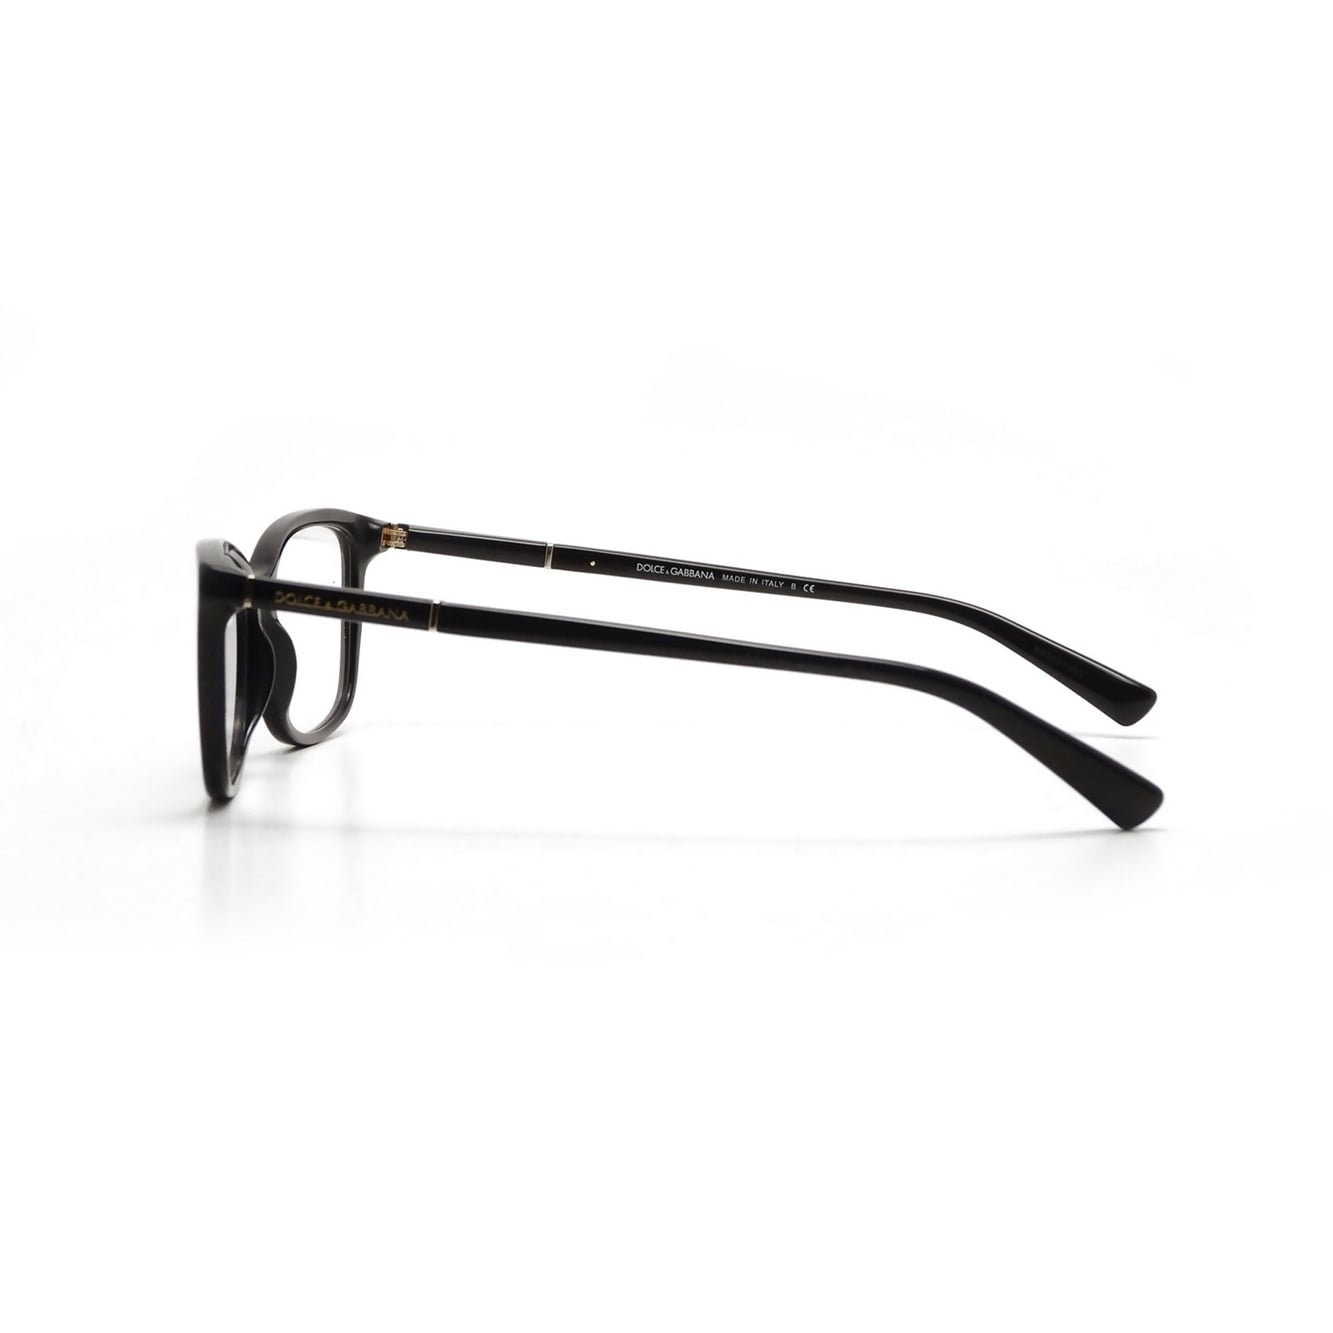 994c553a778 Shop Dolce   Gabbana Women s DG3219 501 53 Square Plastic Black Clear  Eyeglasses - Free Shipping Today - Overstock - 14799369